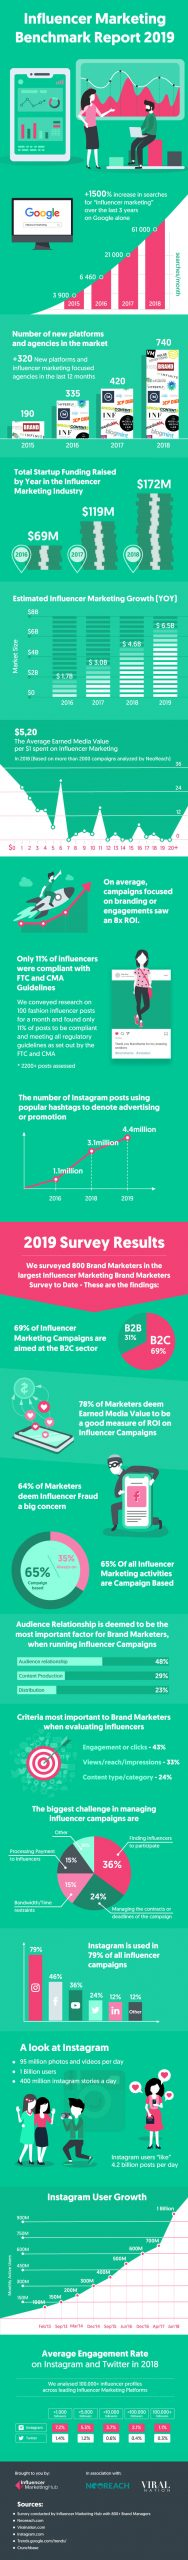 Influencer Marketing Benchmark Infographic compressed